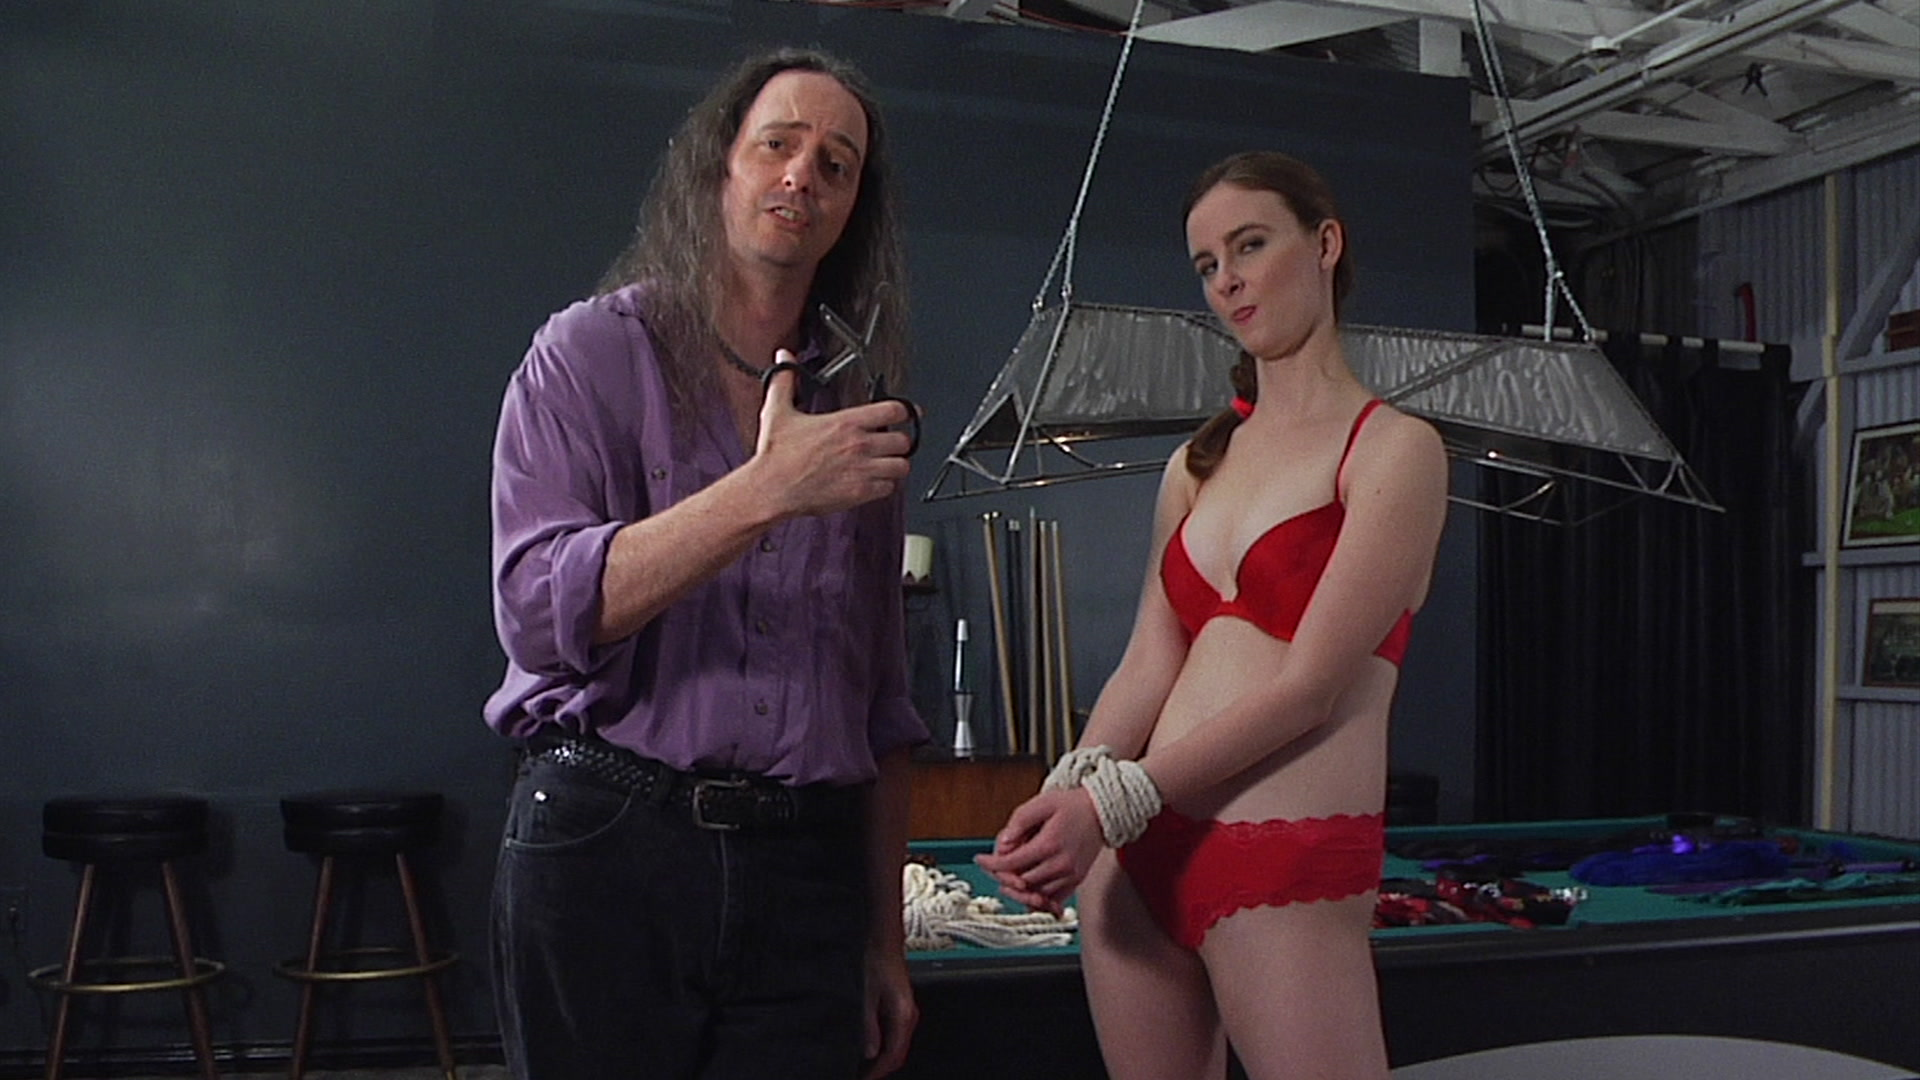 Home bdsm video trailers damn good, she's